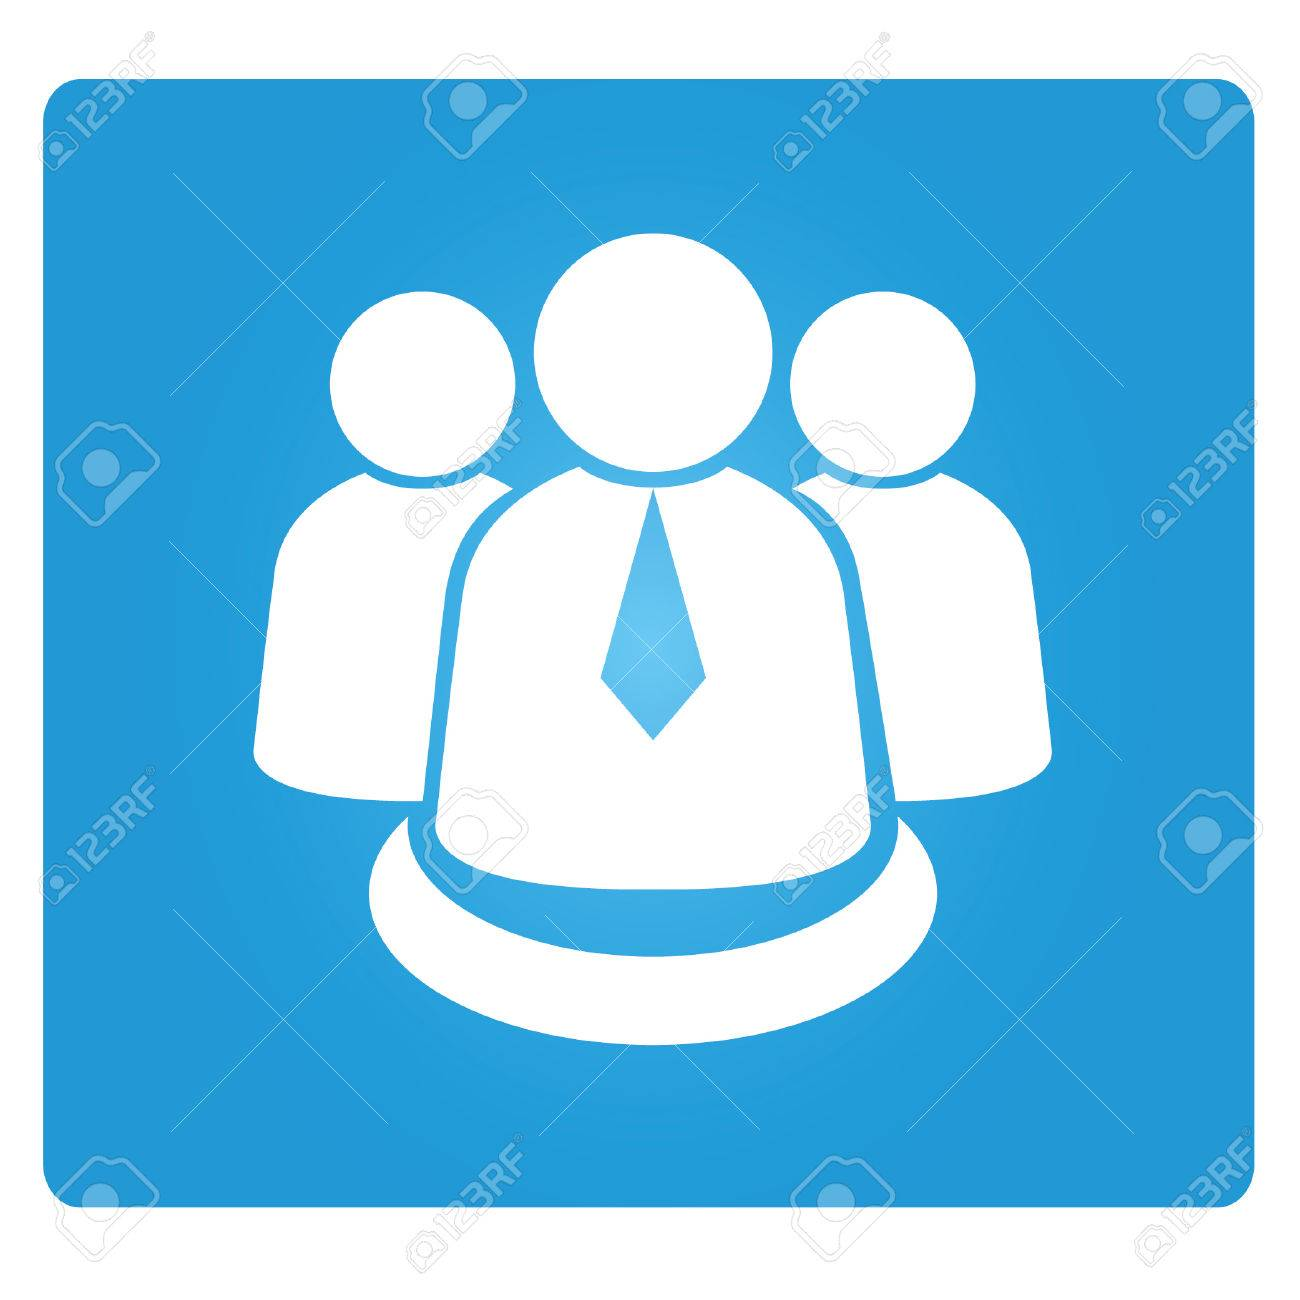 team work Stock Vector - 22645210